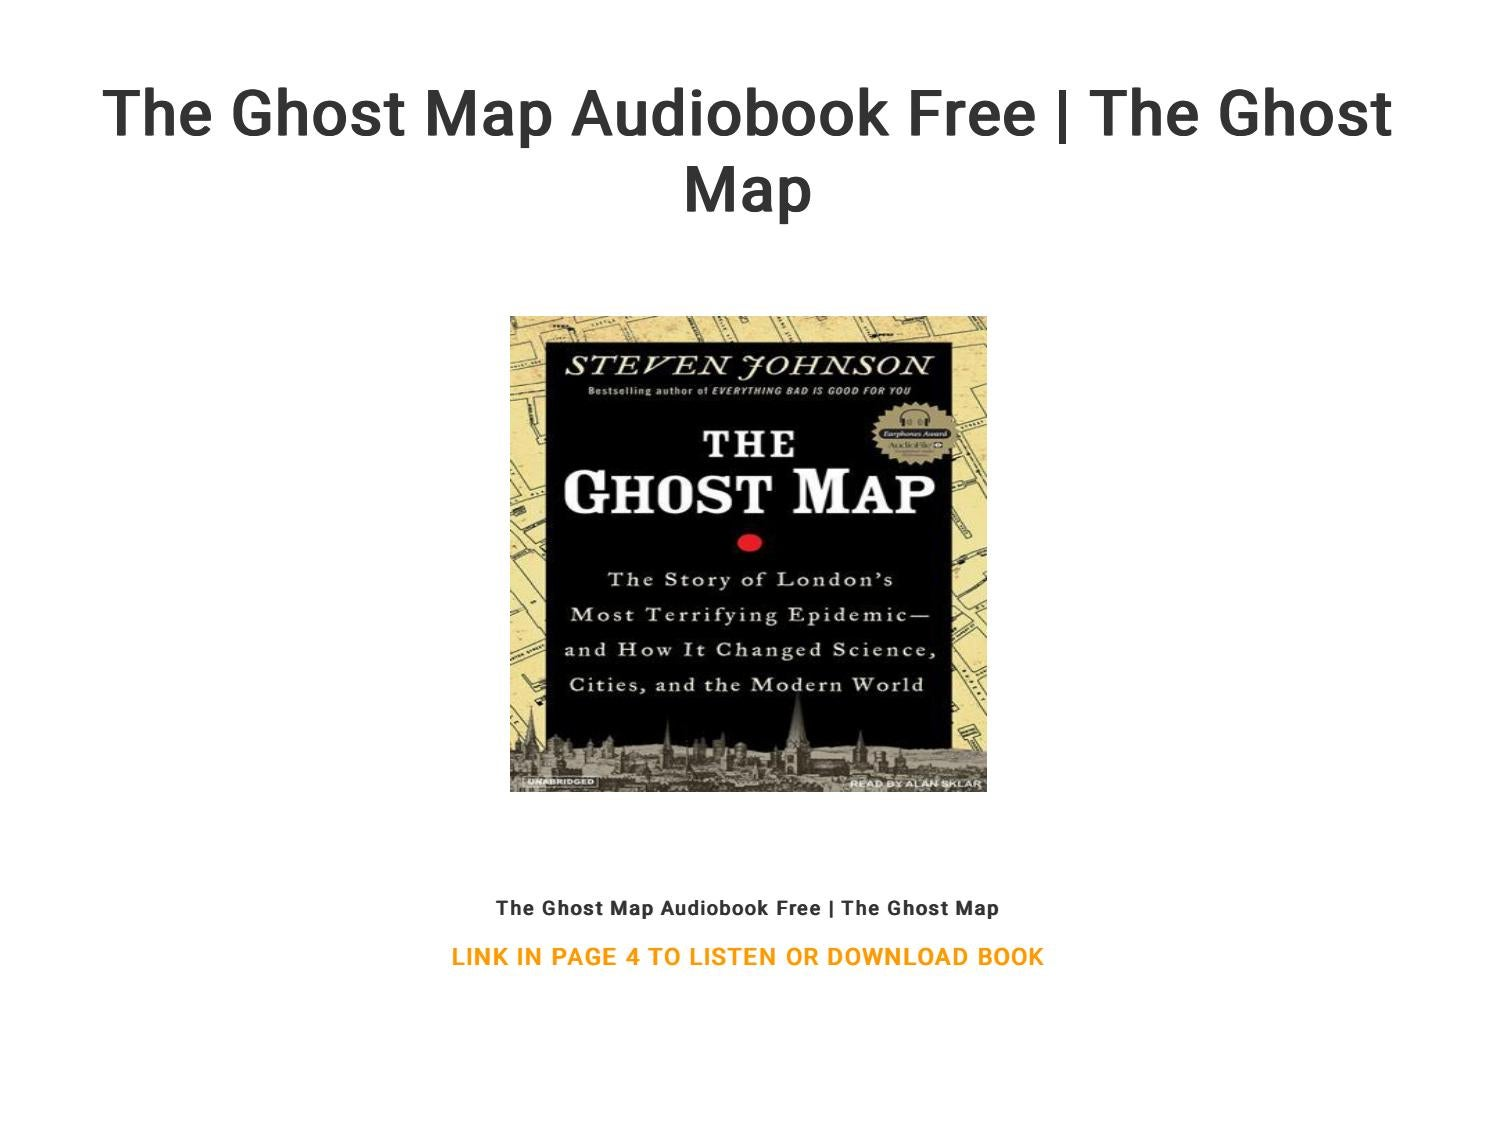 The Ghost Map Audiobook Free   The Ghost Map by Tine199317 ... on